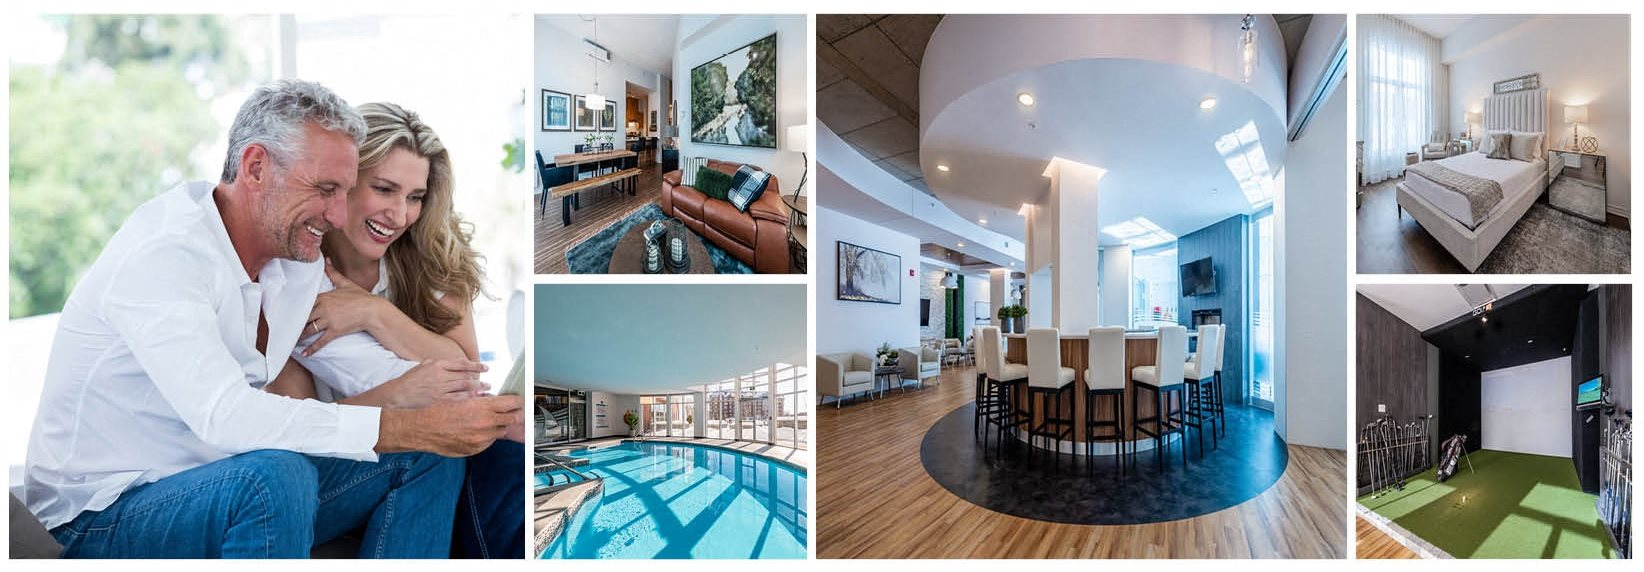 Collage of La Voile Pointe-Claire apartments and amenities in Pointe-Claire, Quebec